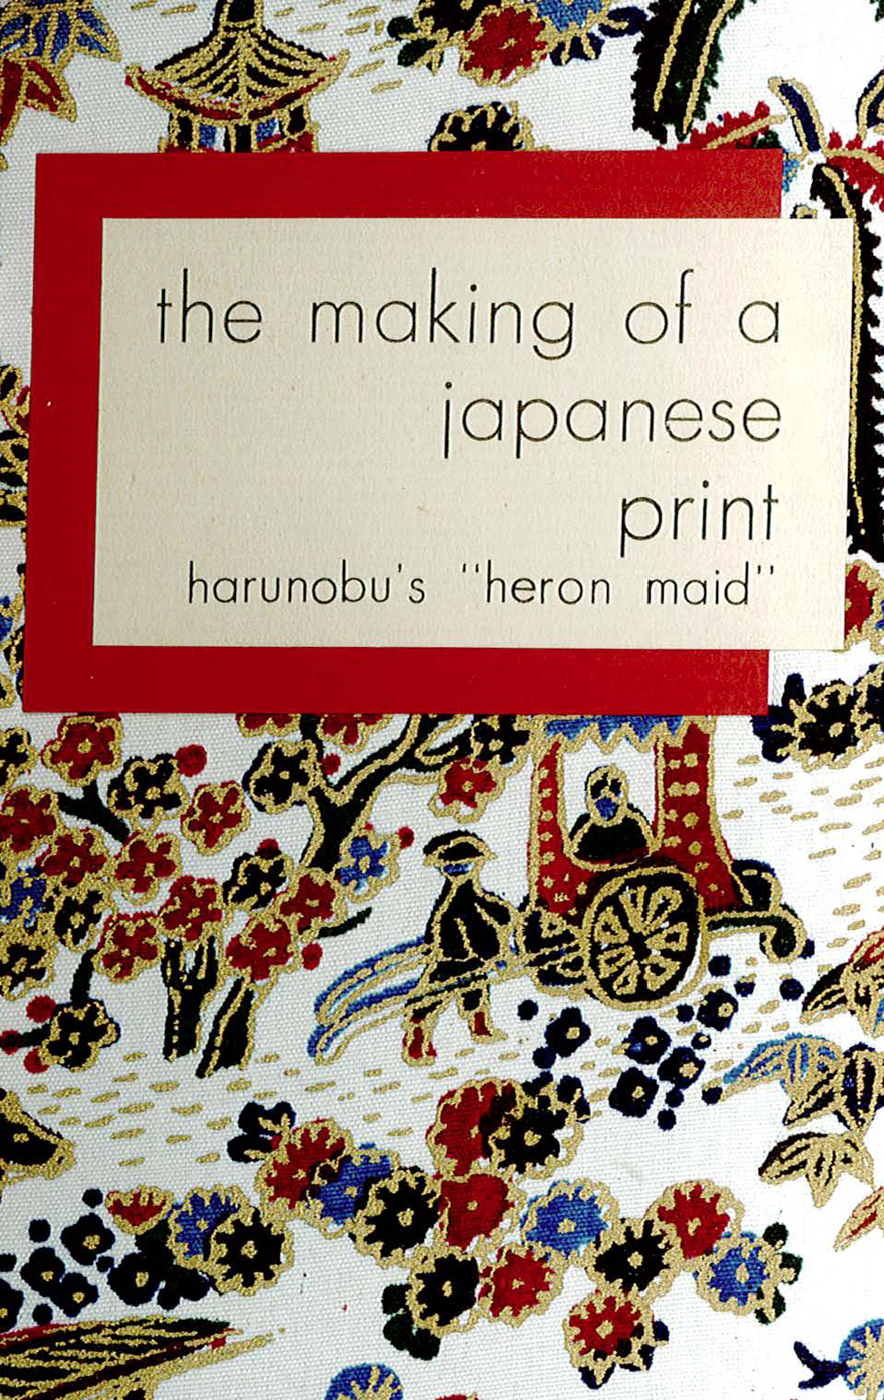 The Making of a Japanese Print